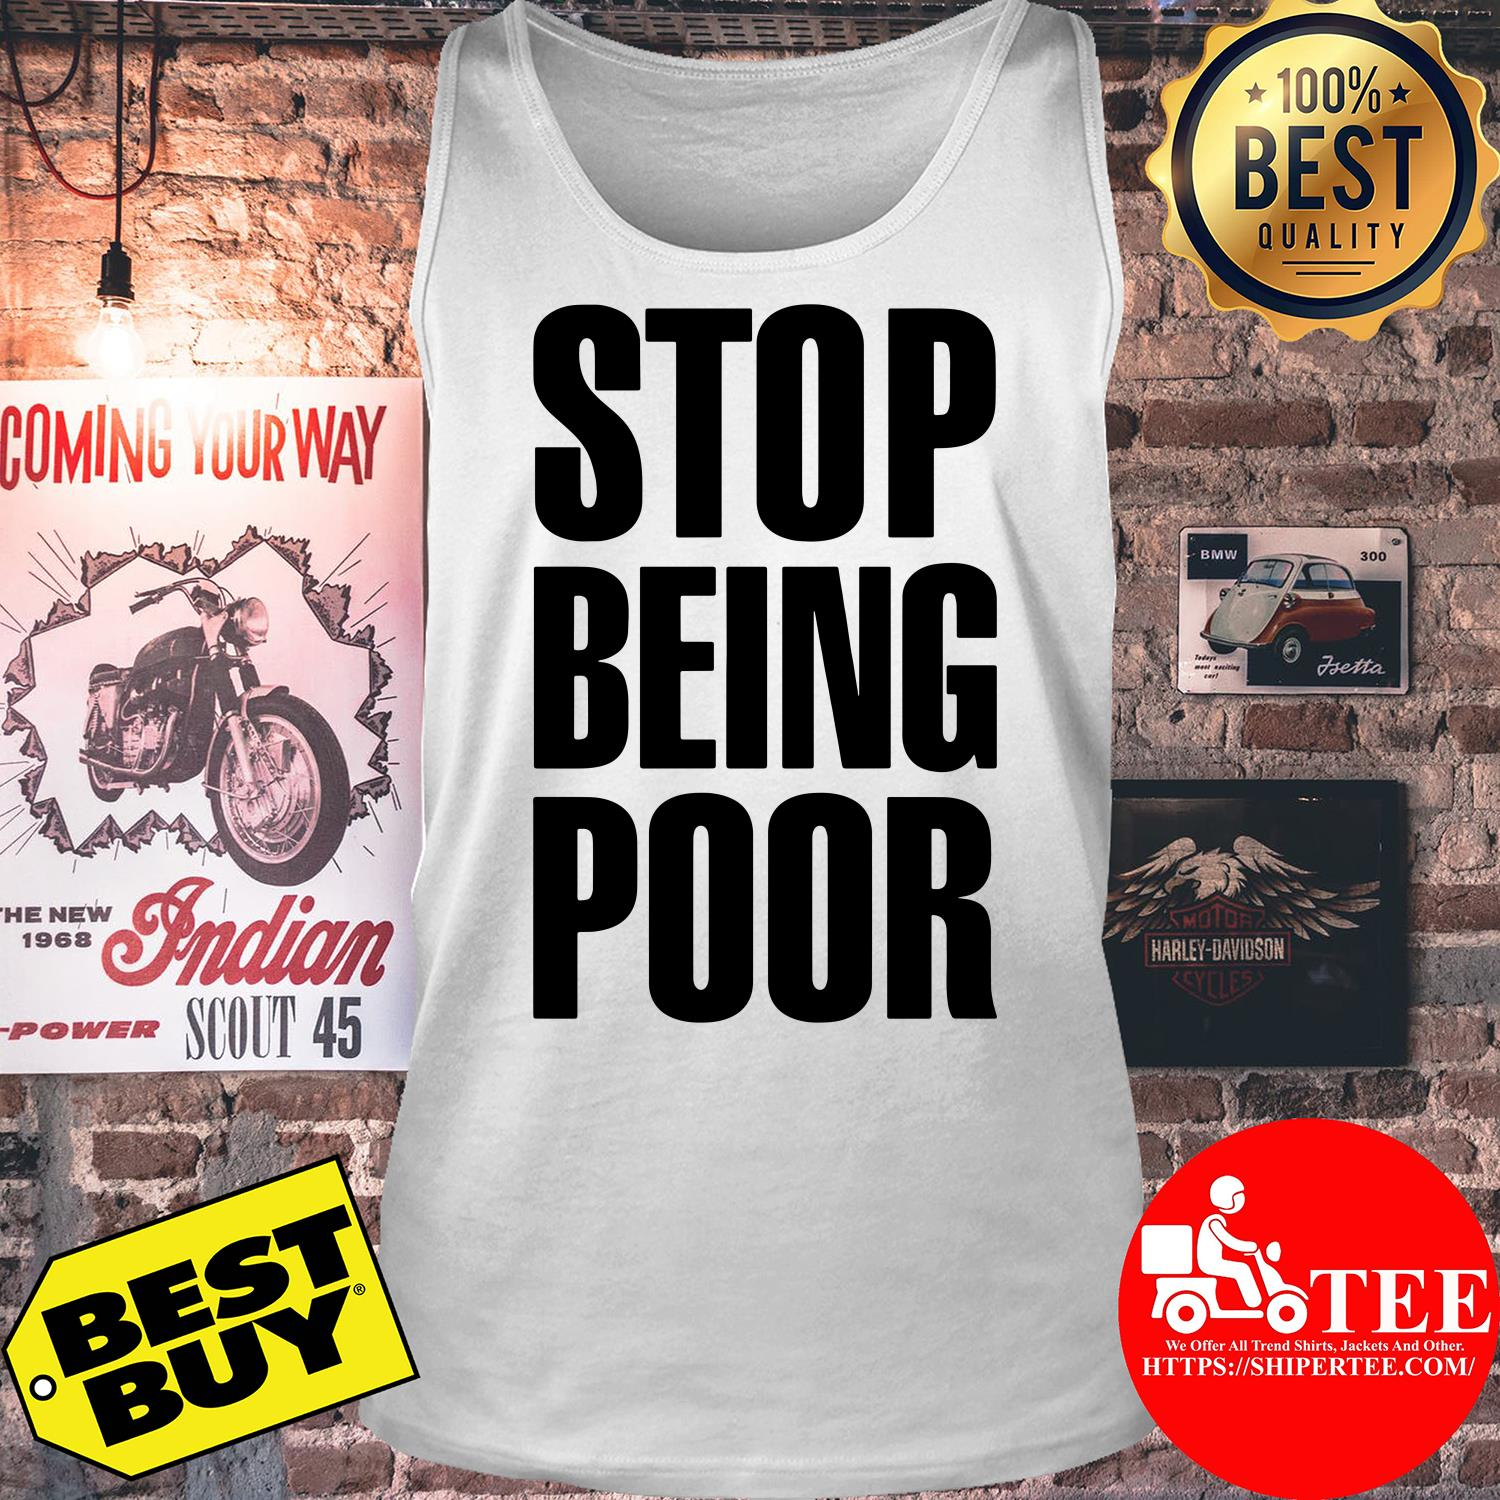 Stop Being Poor Paris Hilton tank top